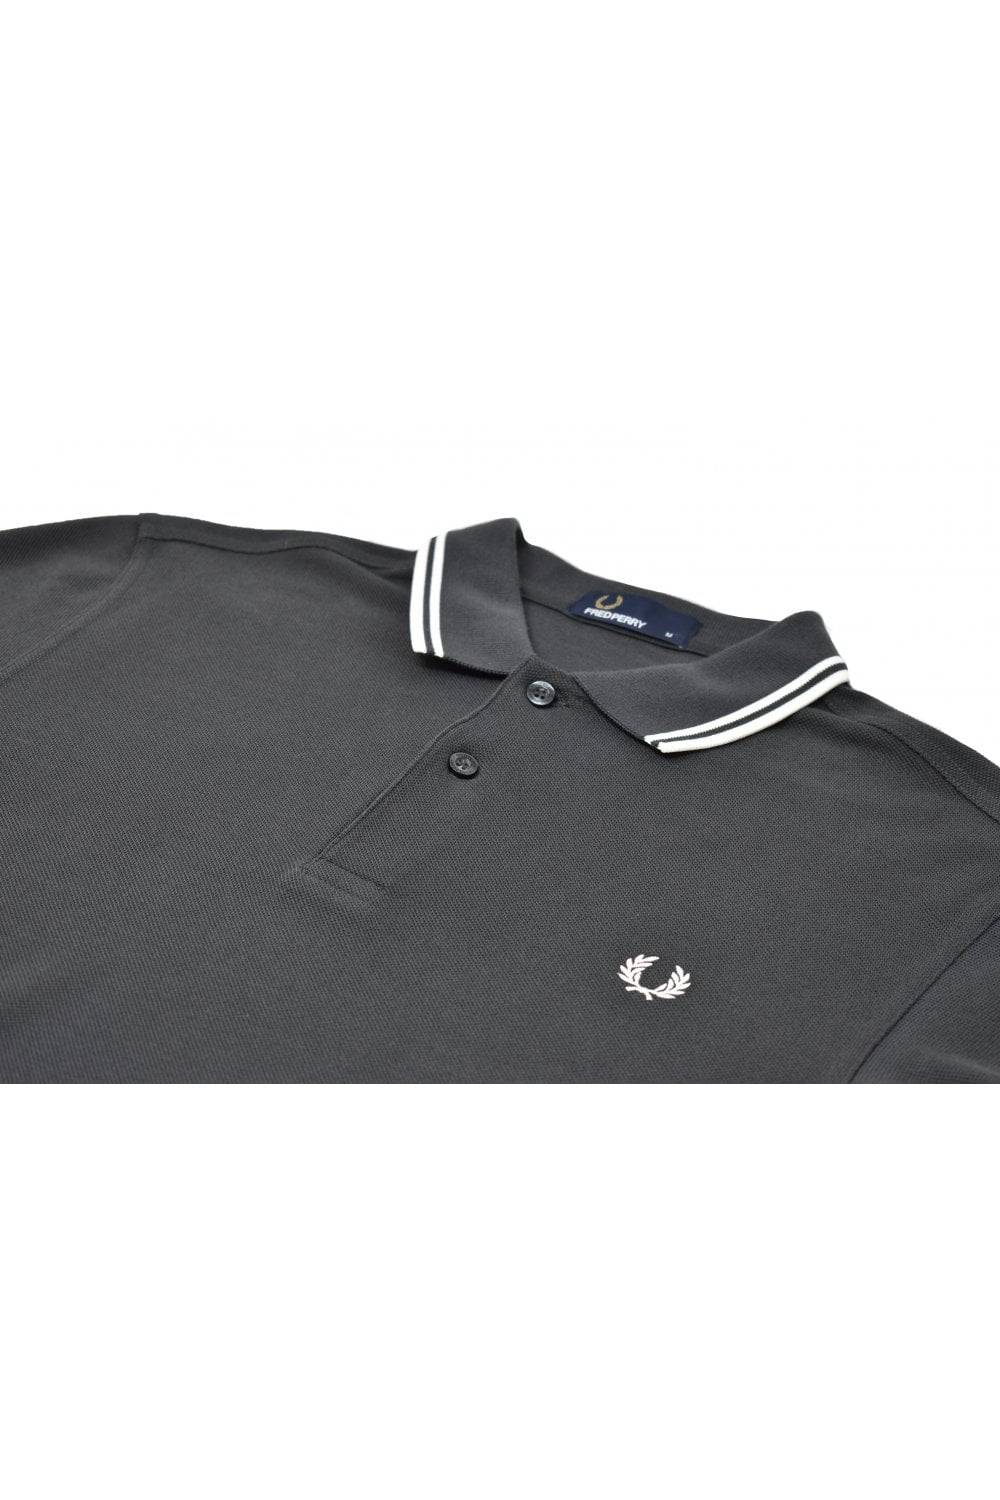 5b6258bd1 Fred Perry Twin Tipped Polo Shirt (Anthracite)